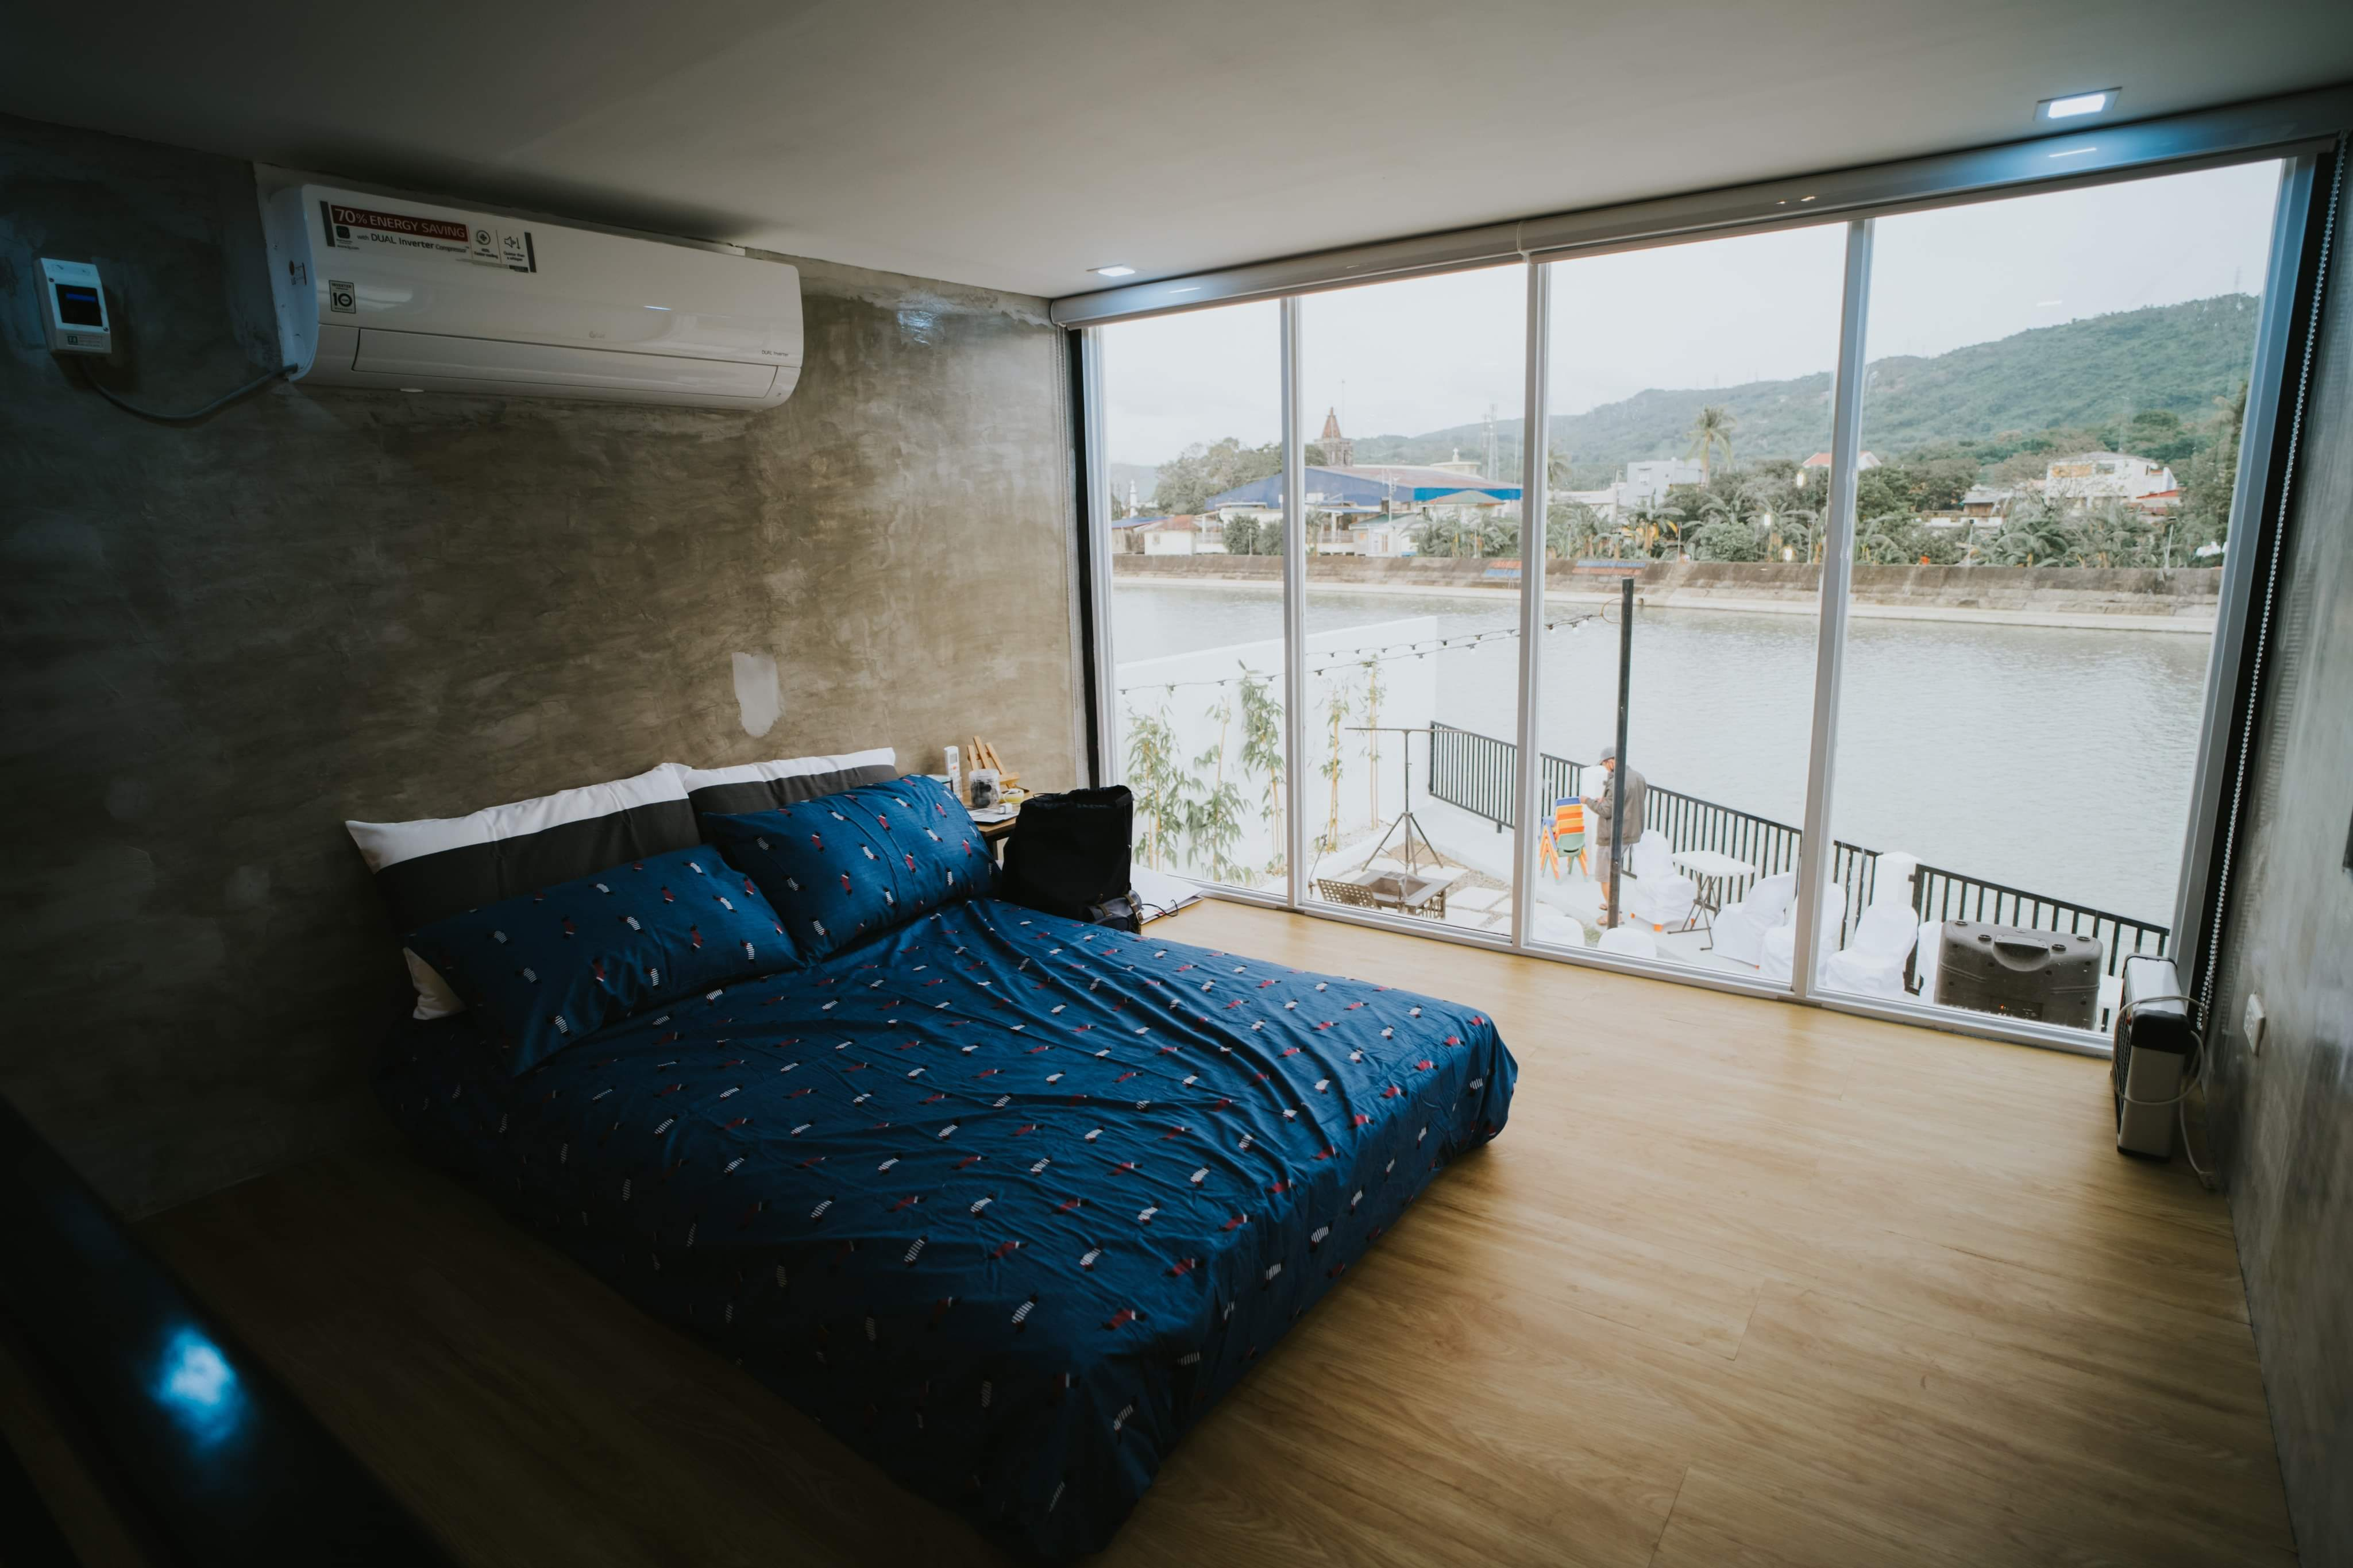 Wide open windows inside the bedroom - container house interior